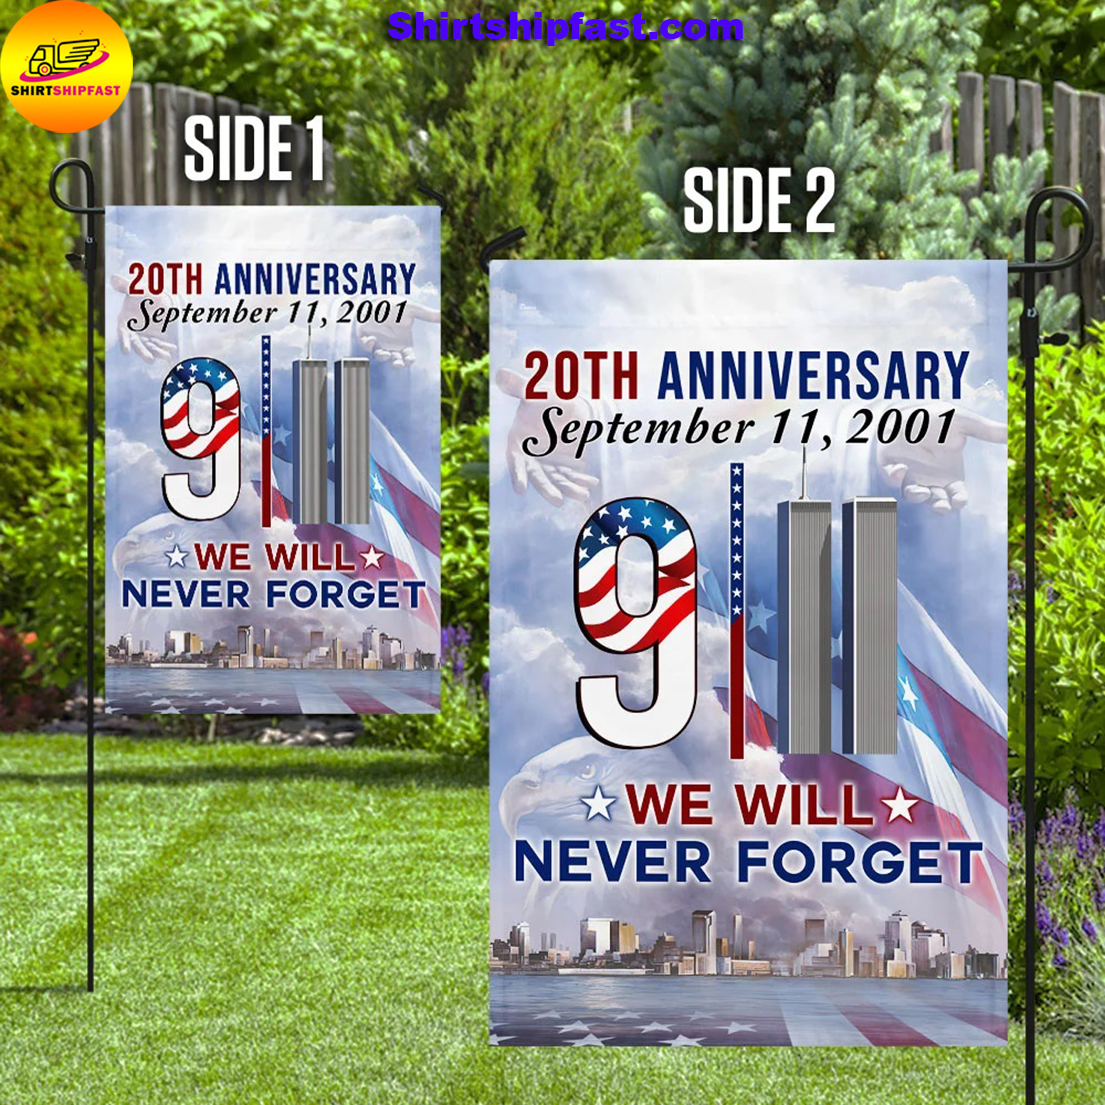 20th anniversary September 11 2001 we will never forget flag - Picture 1